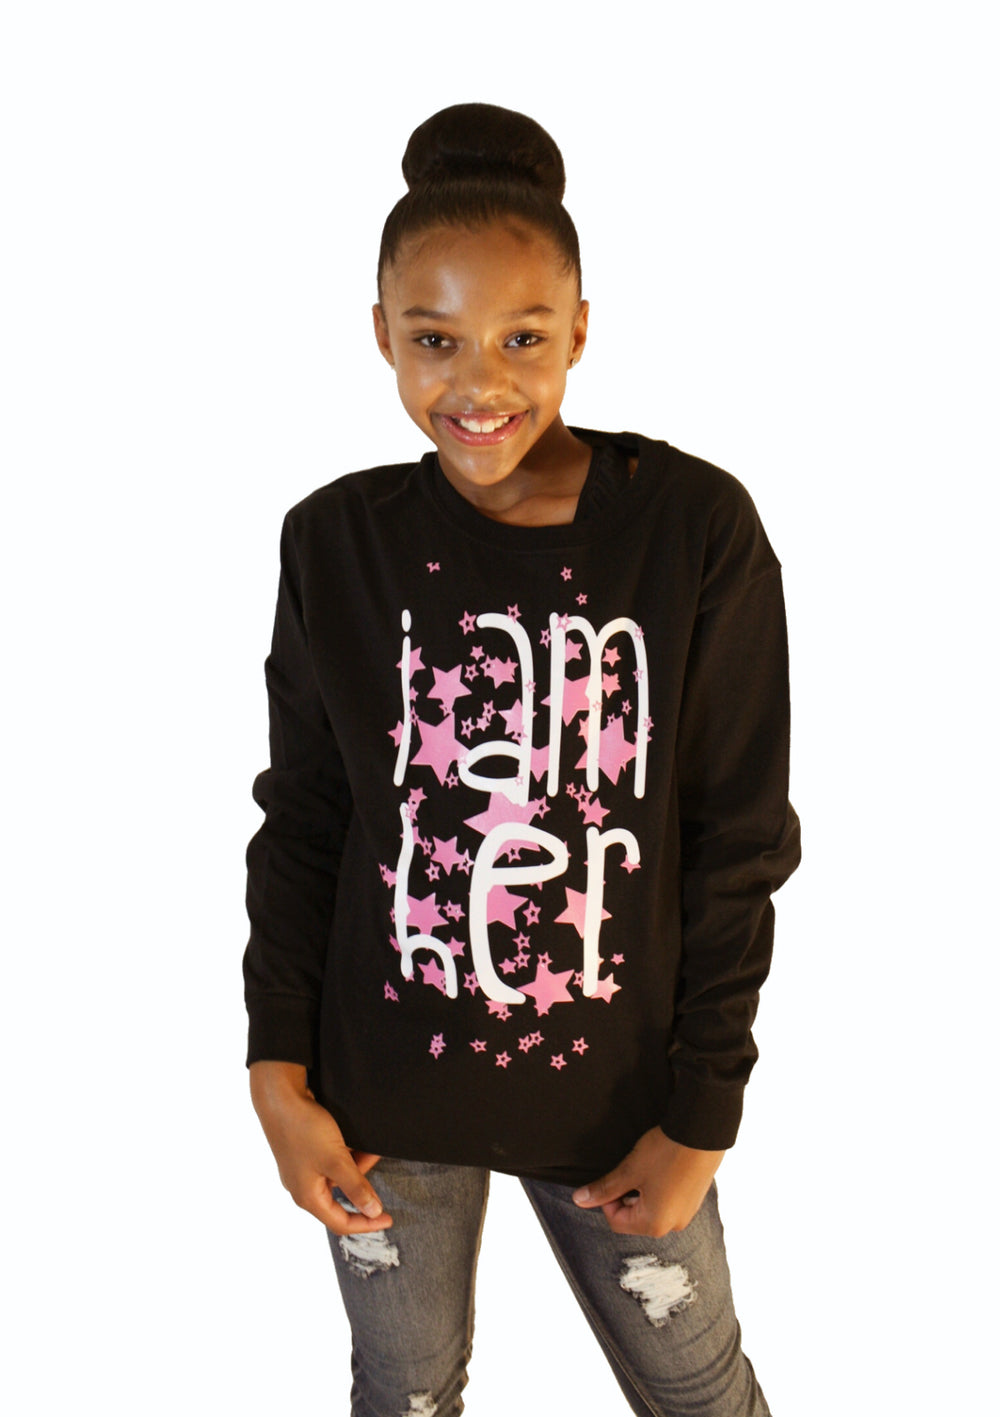 Girl wearing black Longsleeve shirts for kids with saying, I AM HER. Girls fashion designed for her because it is never too early or too late for her to know her value and worth.